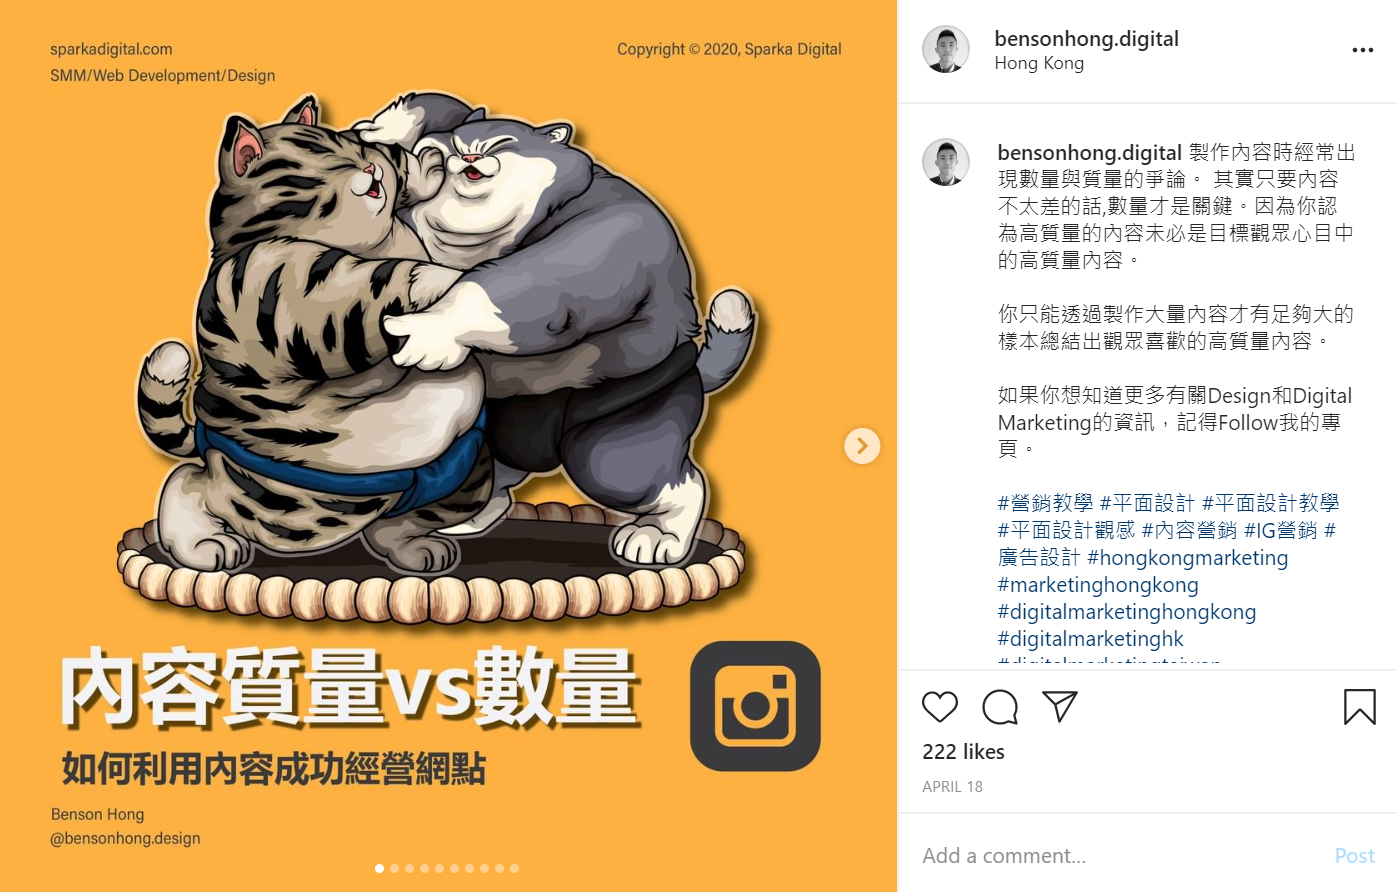 Screenshot of Sparka Digital's Instagram post about quality versus quantity